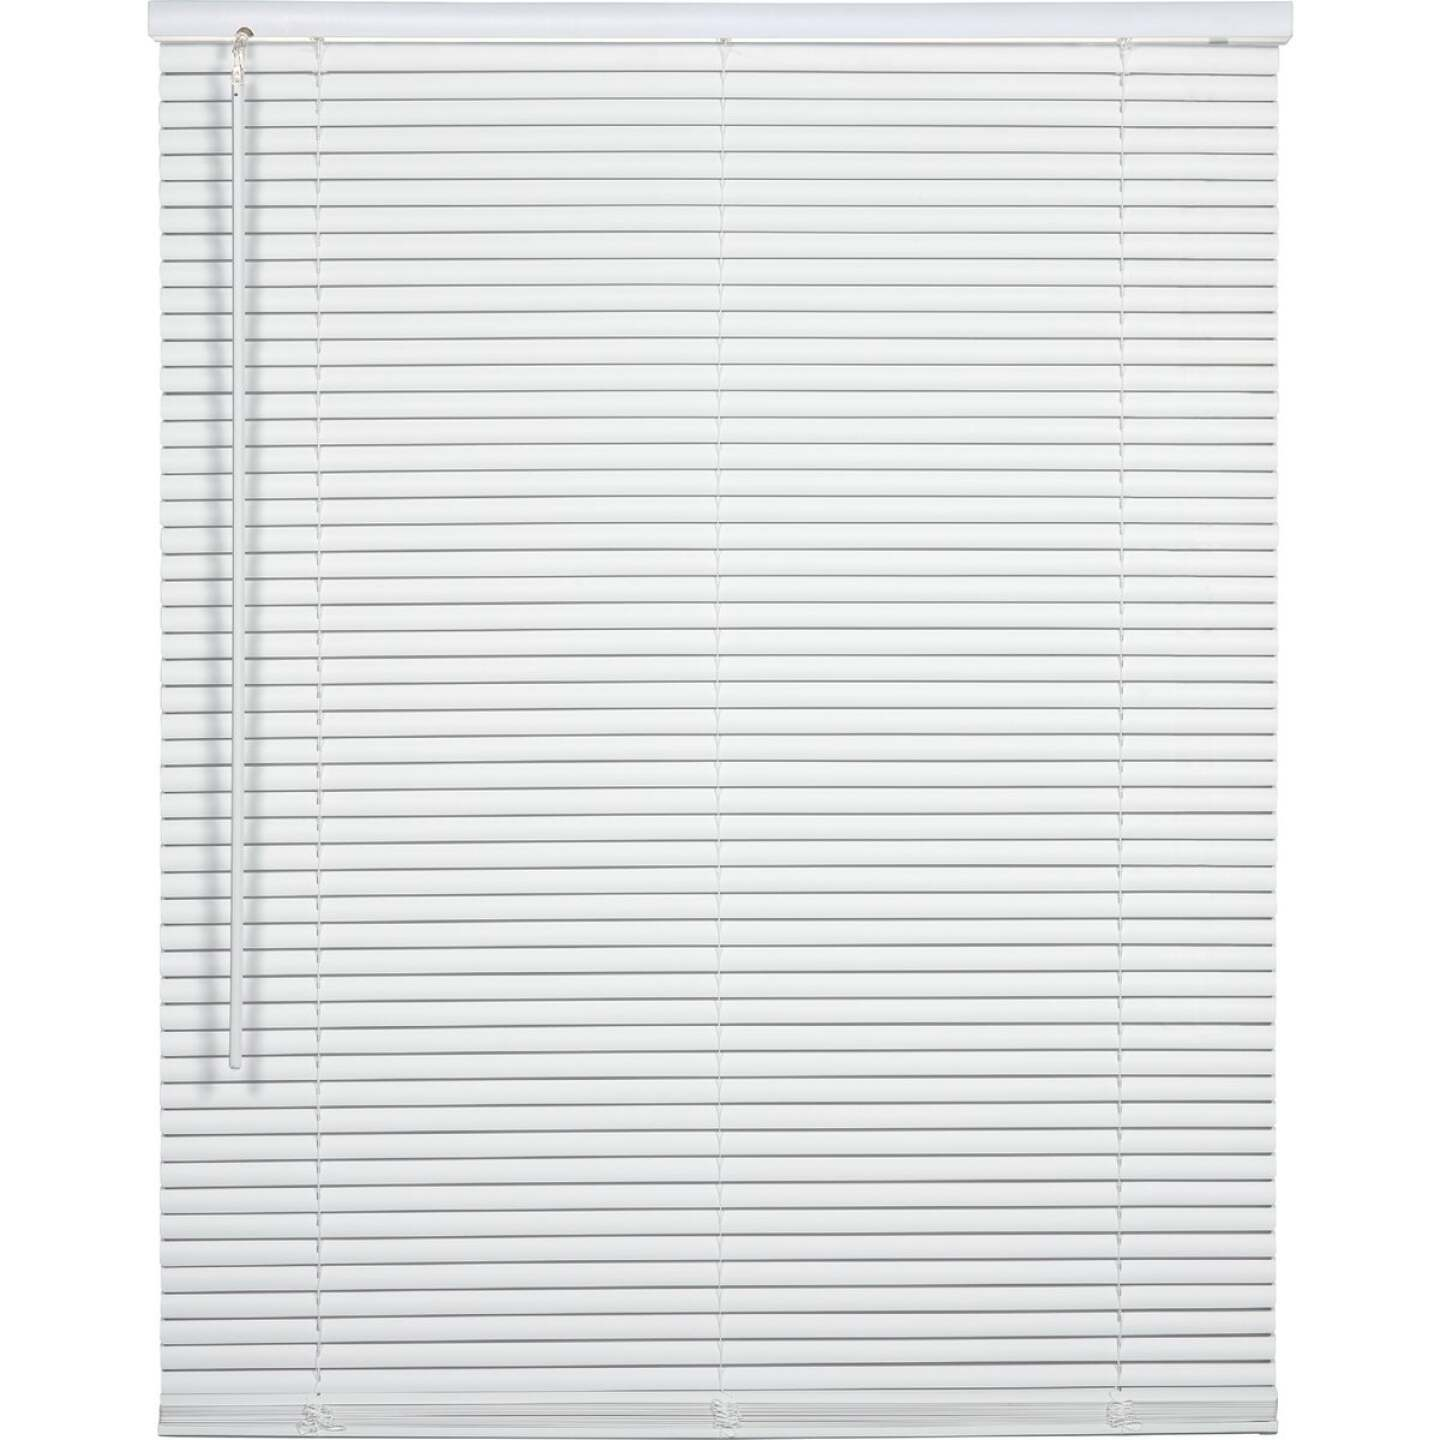 Home Impressions 35 In. x 64 In. x 1 In. White Vinyl Light Filtering Cordless Mini Blind Image 1